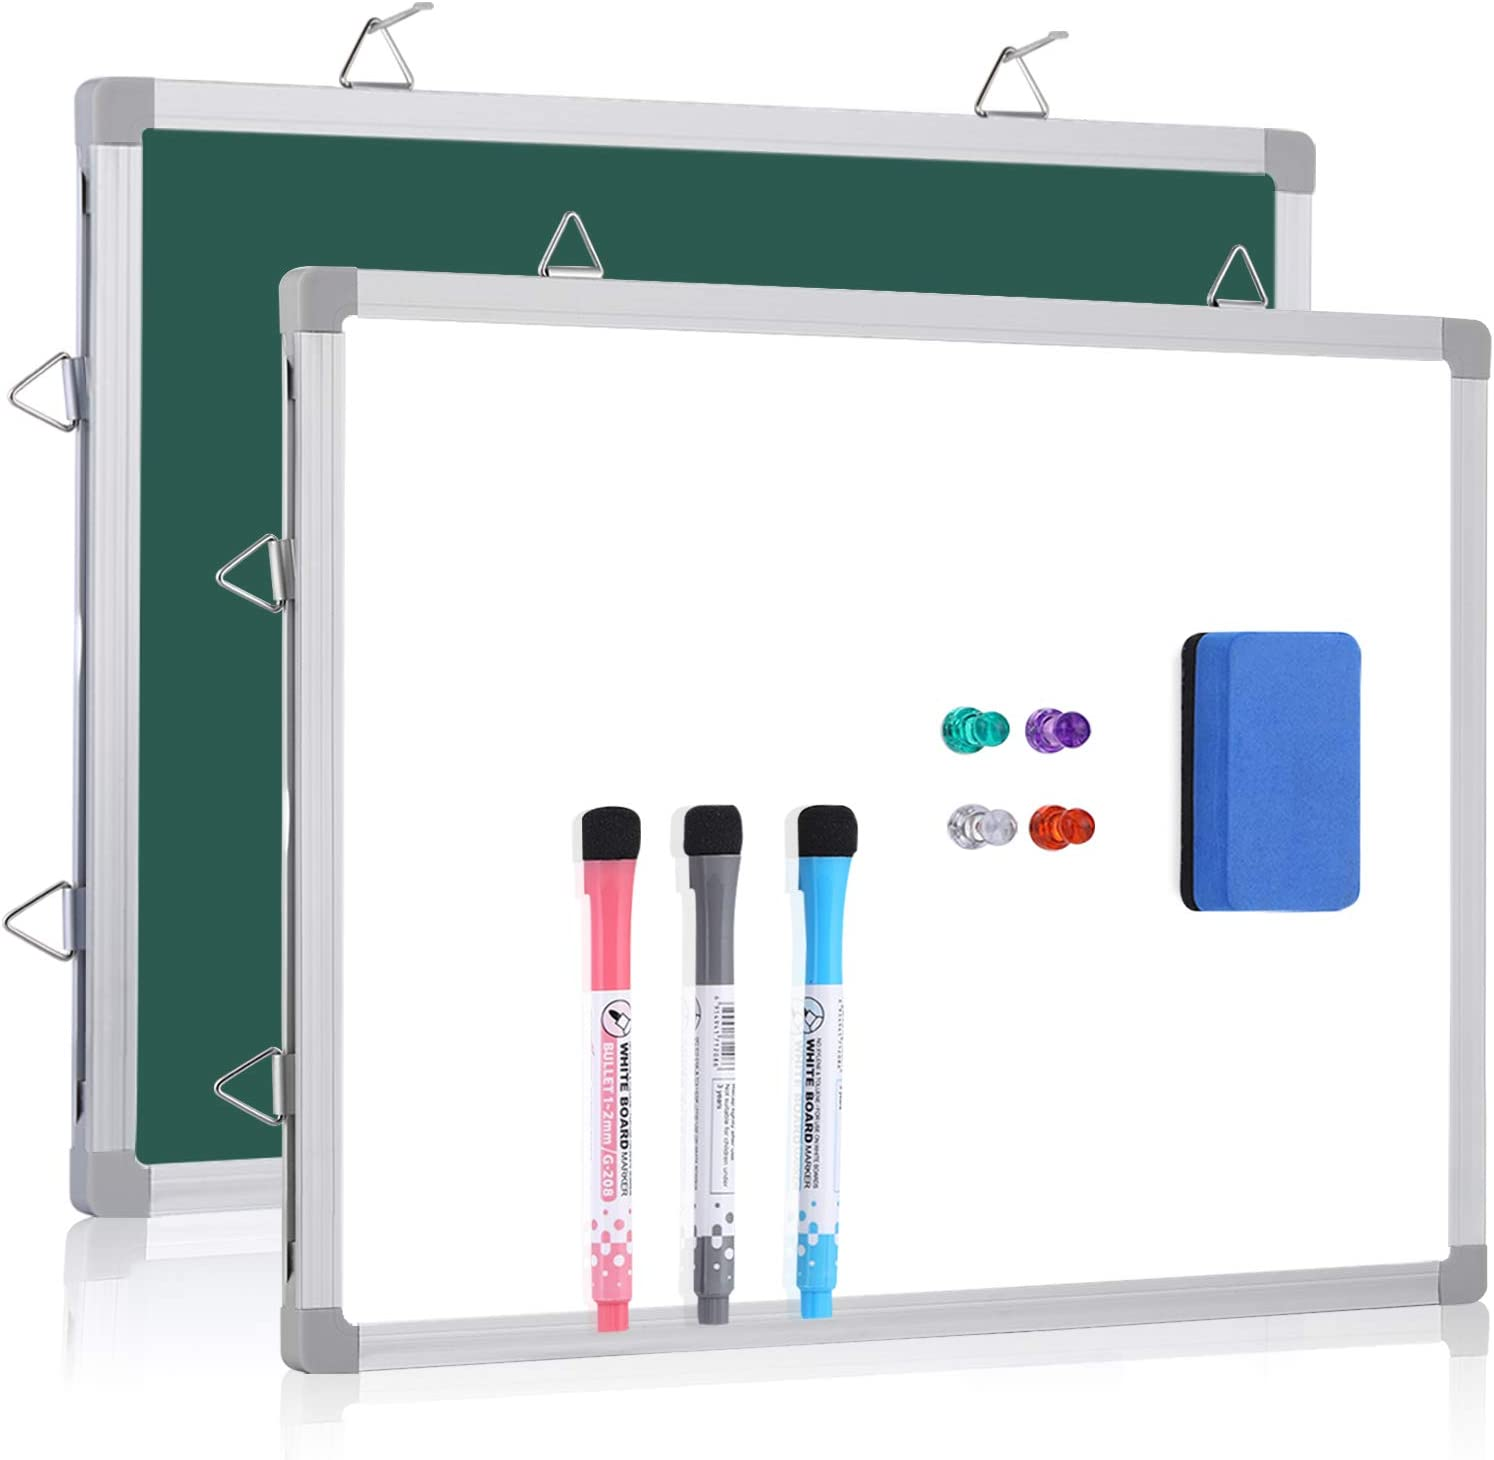 Magnetic Chalkboard Small Dry Erase Board 2 in 16 Inch 12 Excellent 1 x Max 62% OFF